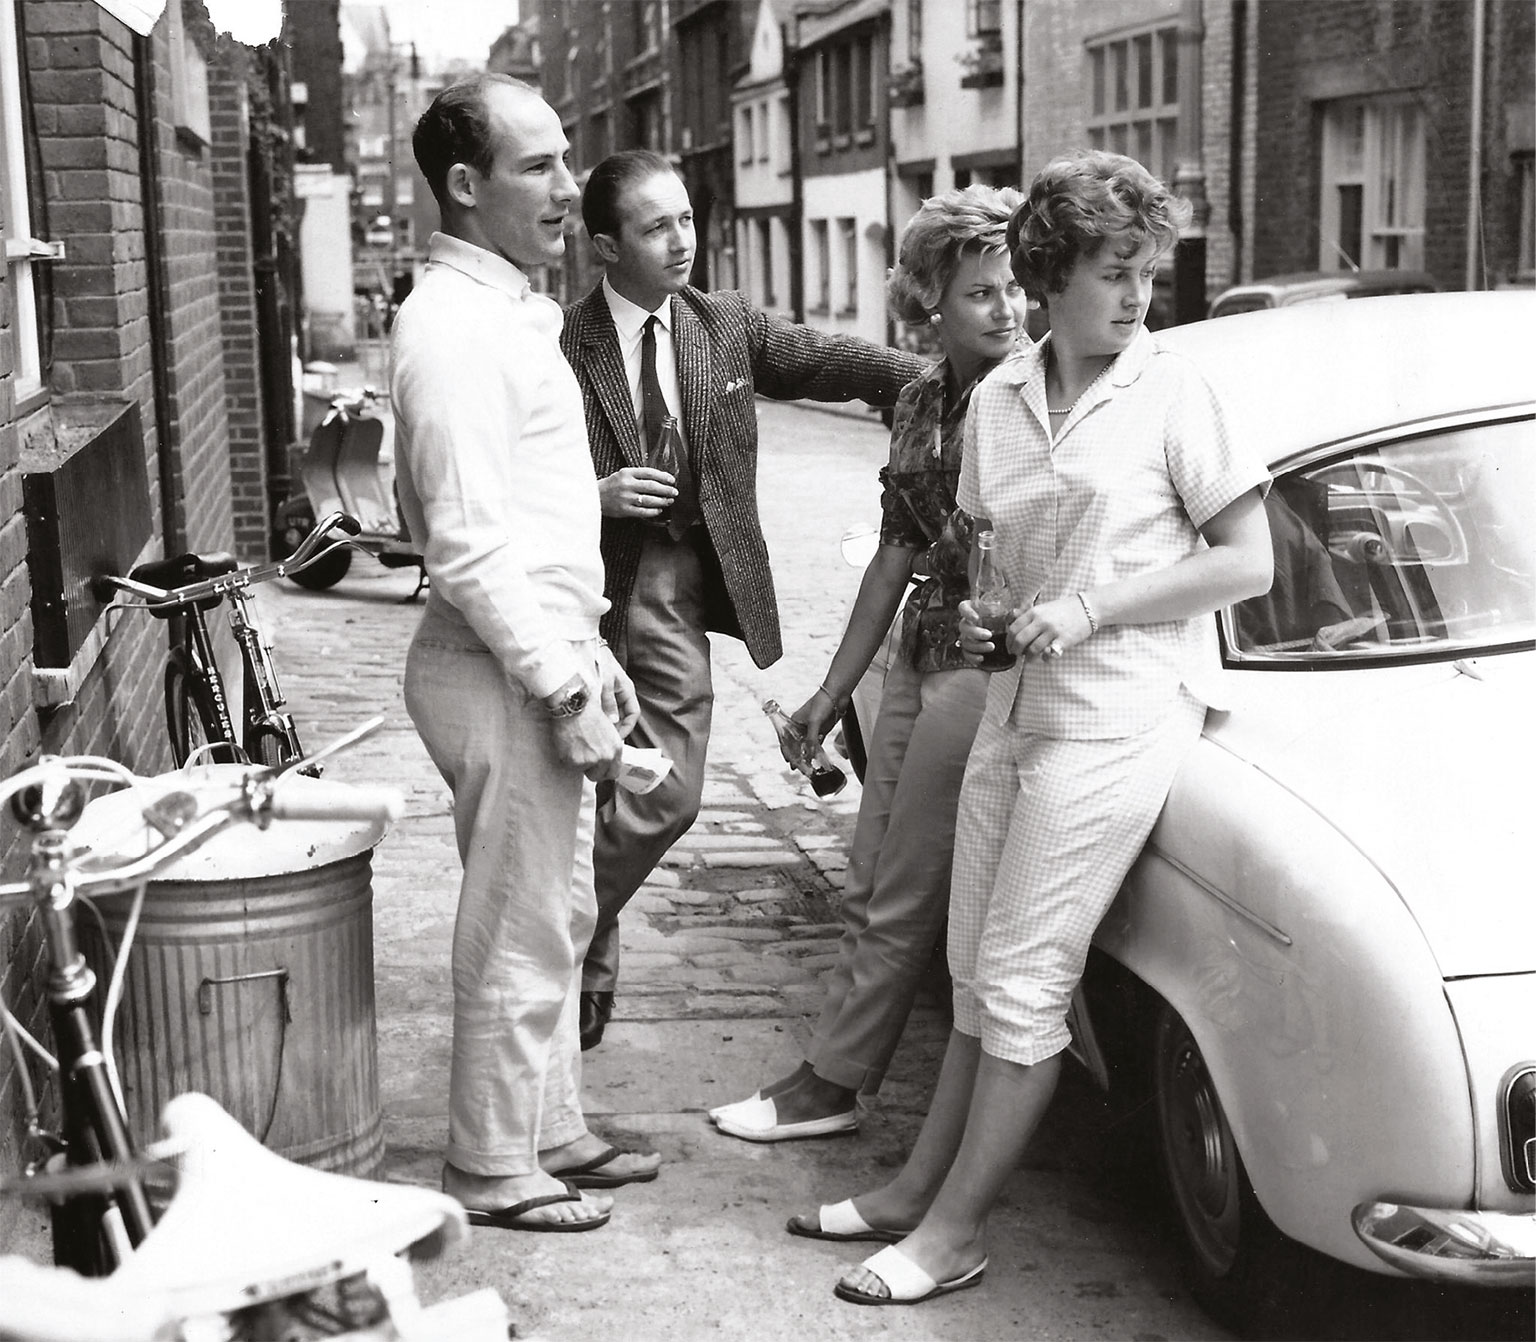 Stirling and Val (in the foreground) about to visit their Belgravia local. The bikes are to exercise Moss's legs after his 1960 Spa accident